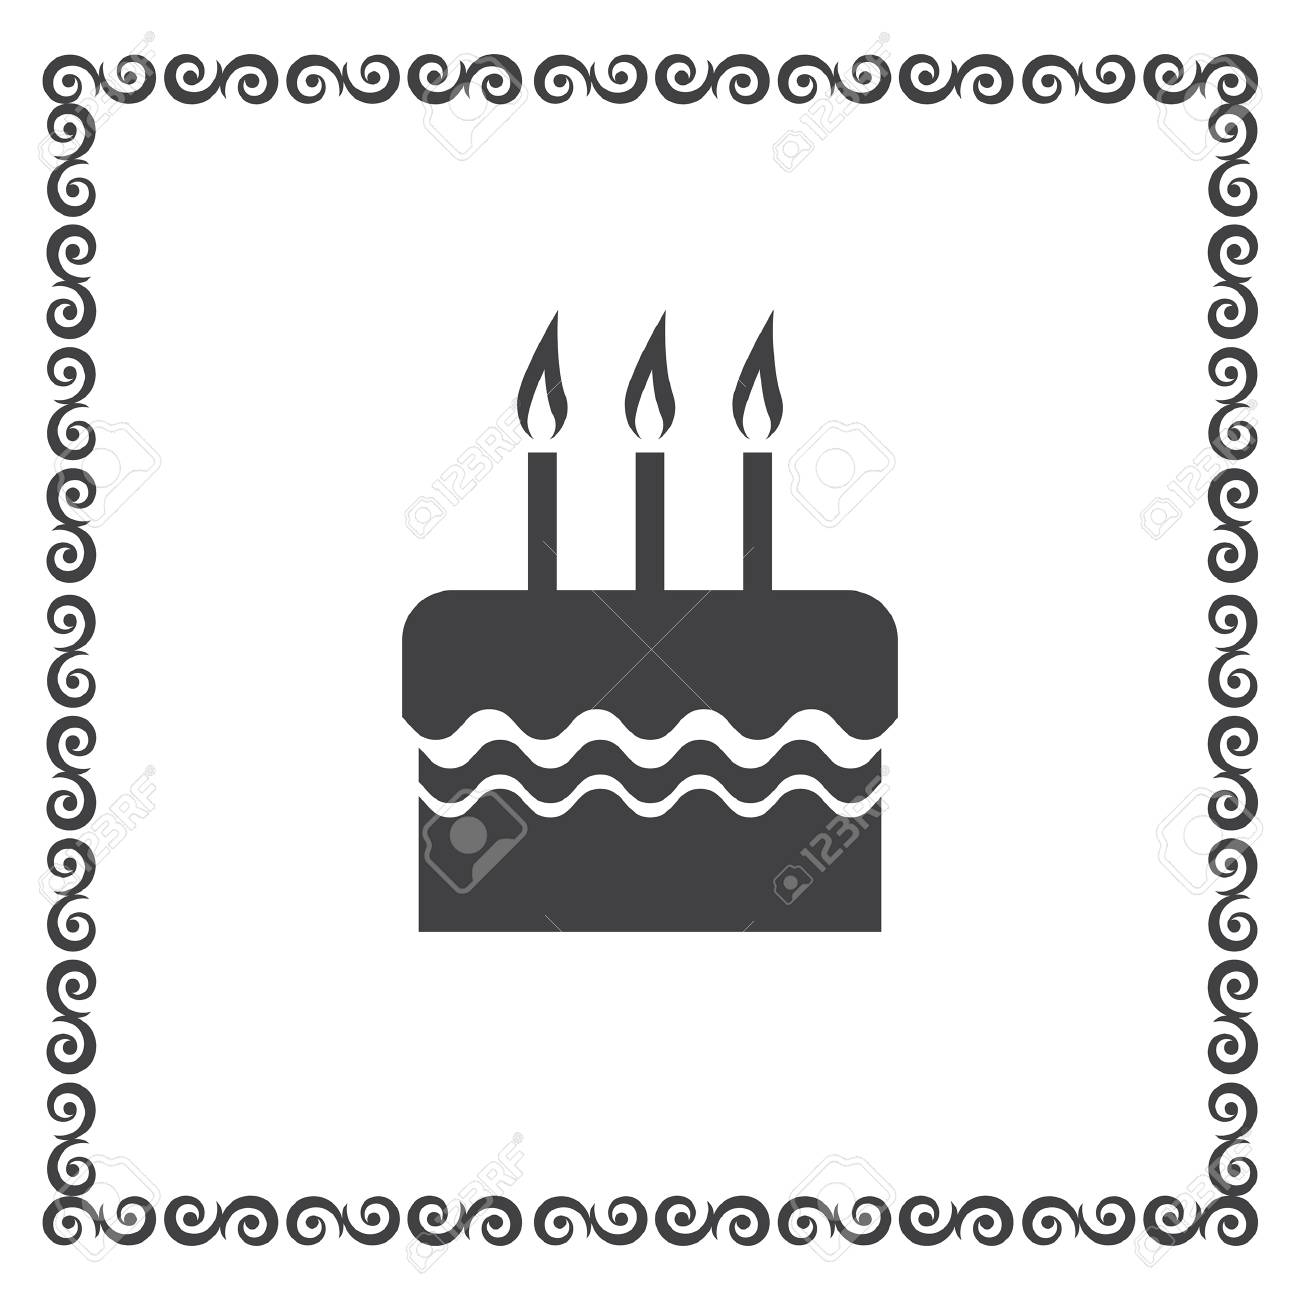 Birthday Cake Vector Icon Royalty Free Cliparts Vectors And Stock